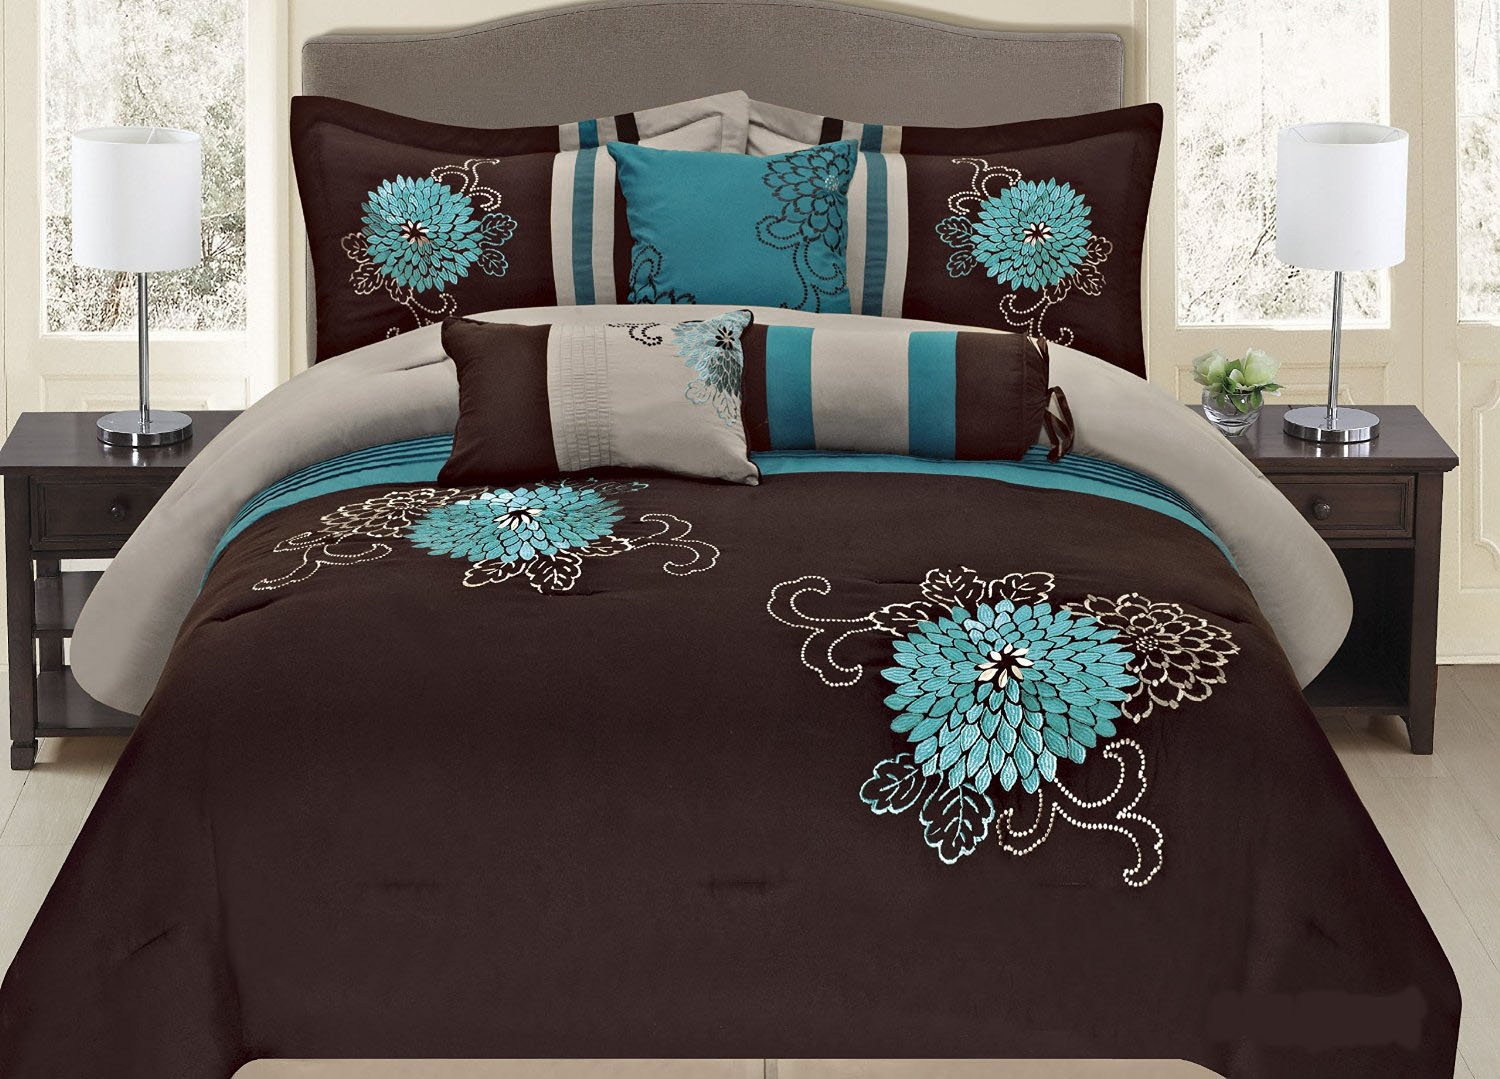 Fancy Collection 7-pc Embroidery Bedding Brown Turquoise Comforter Set (King